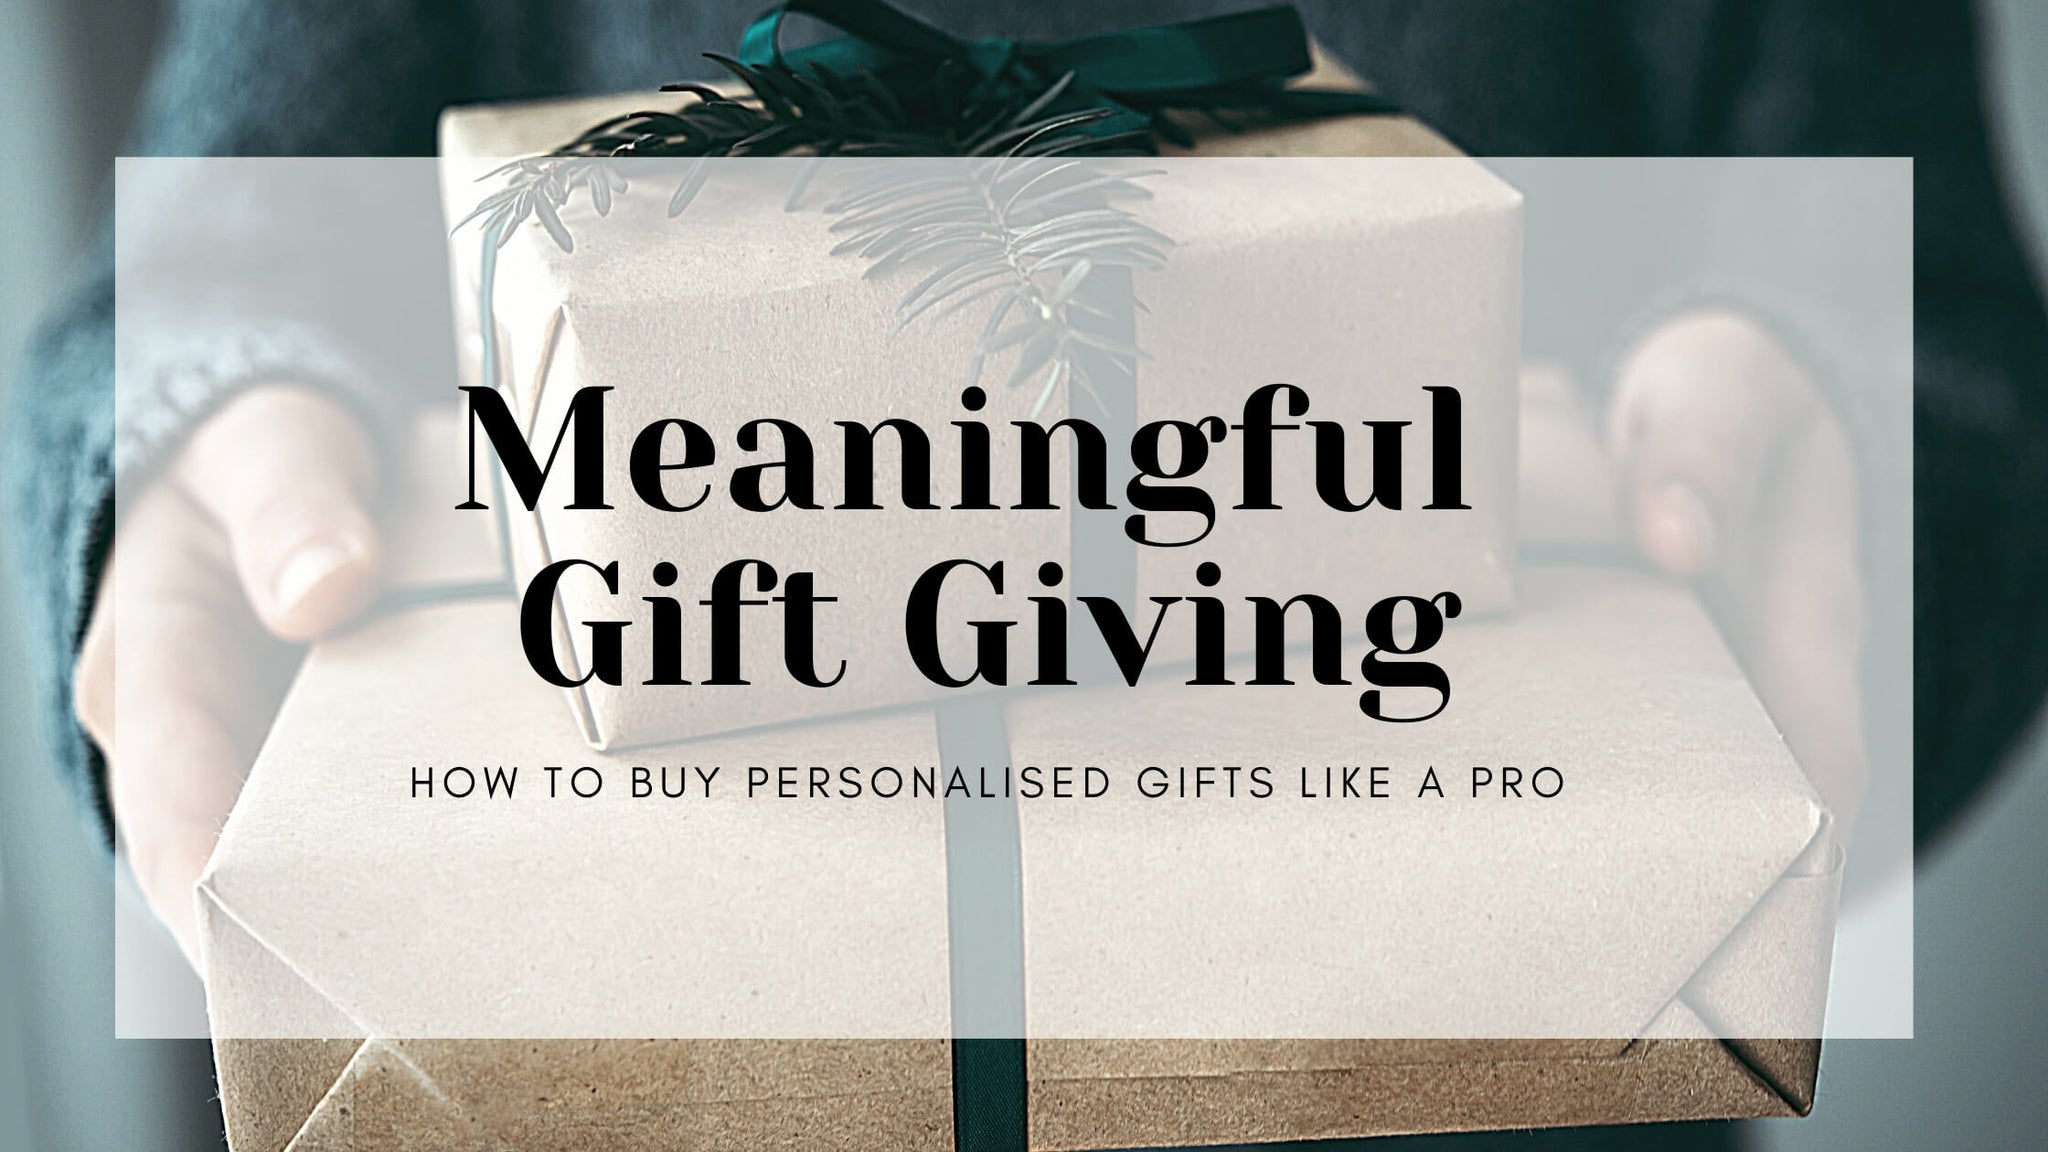 Meaningful gift giving